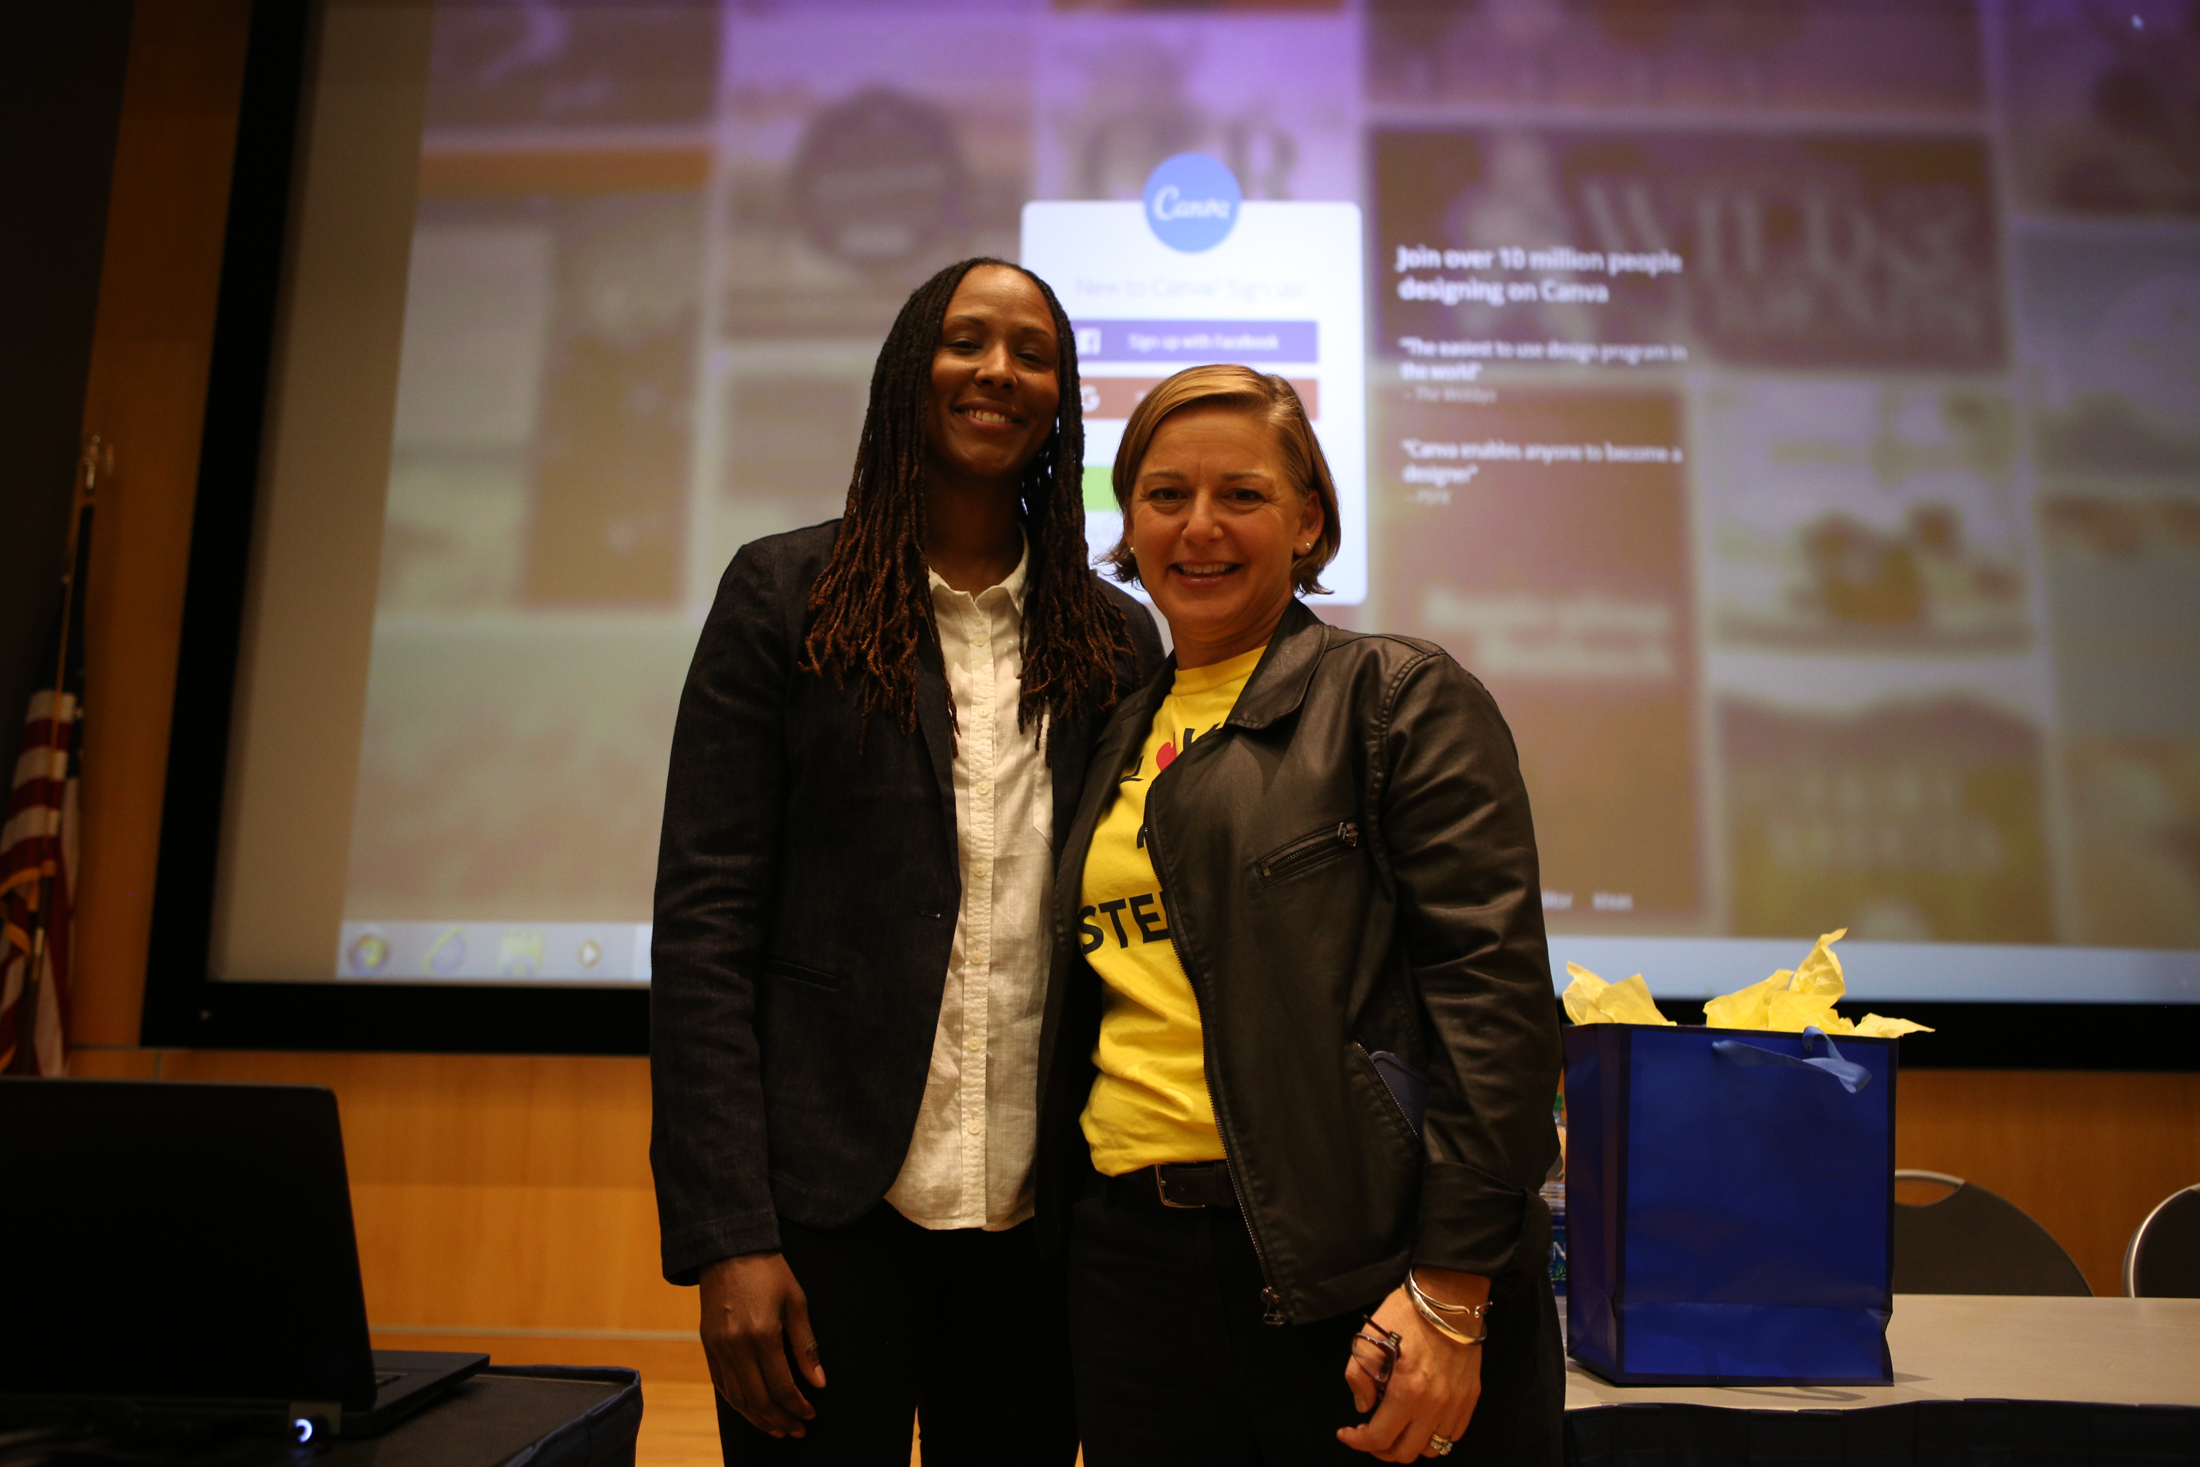 Keynote speaker Chamique Holdsclaw shares her experience with depression and suicide on Wednesday, Sept. 28, 2016 in the Student Union Theater. (Junbo Huang/The Daily Campus)